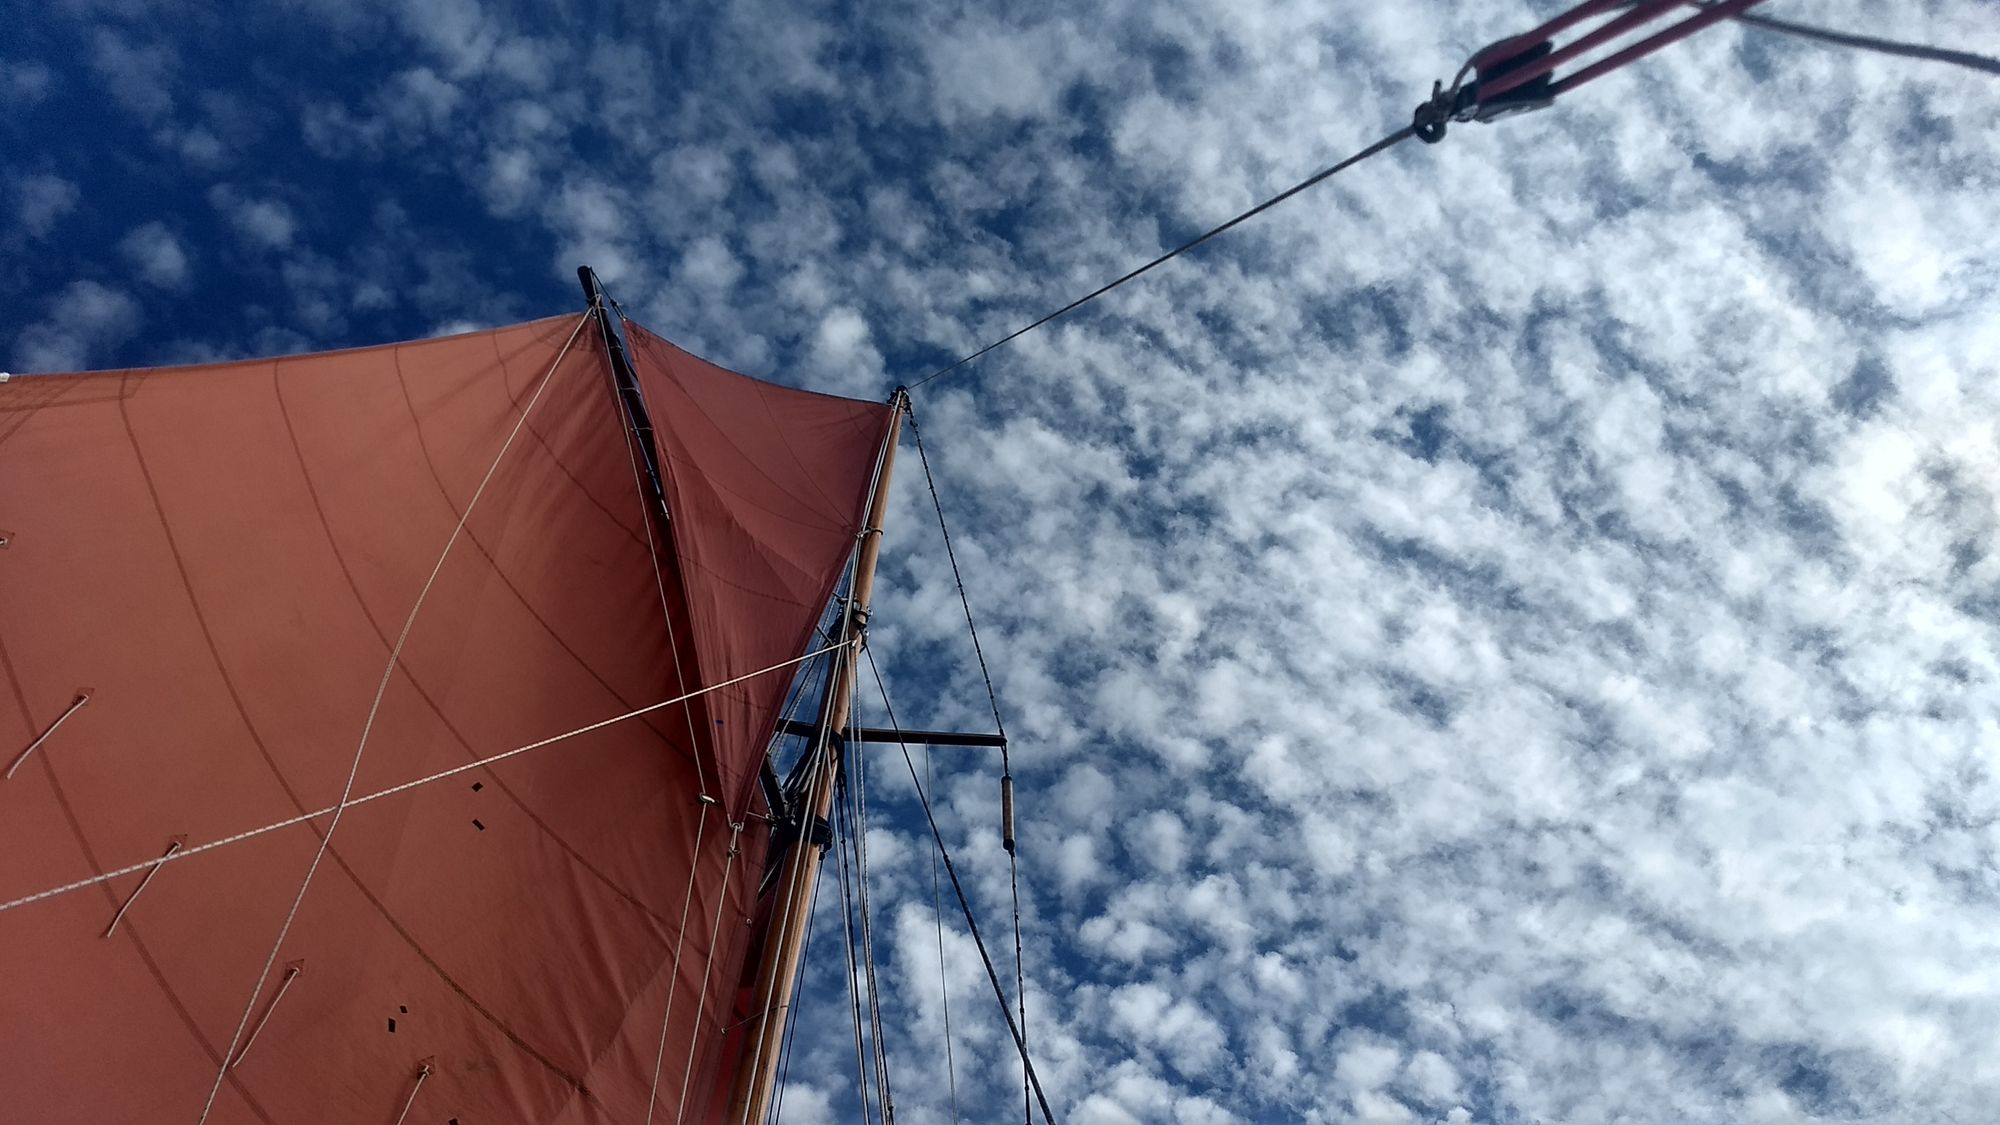 Looking up the mast at the topsail. The sky is dappled with fluffy white clouds.